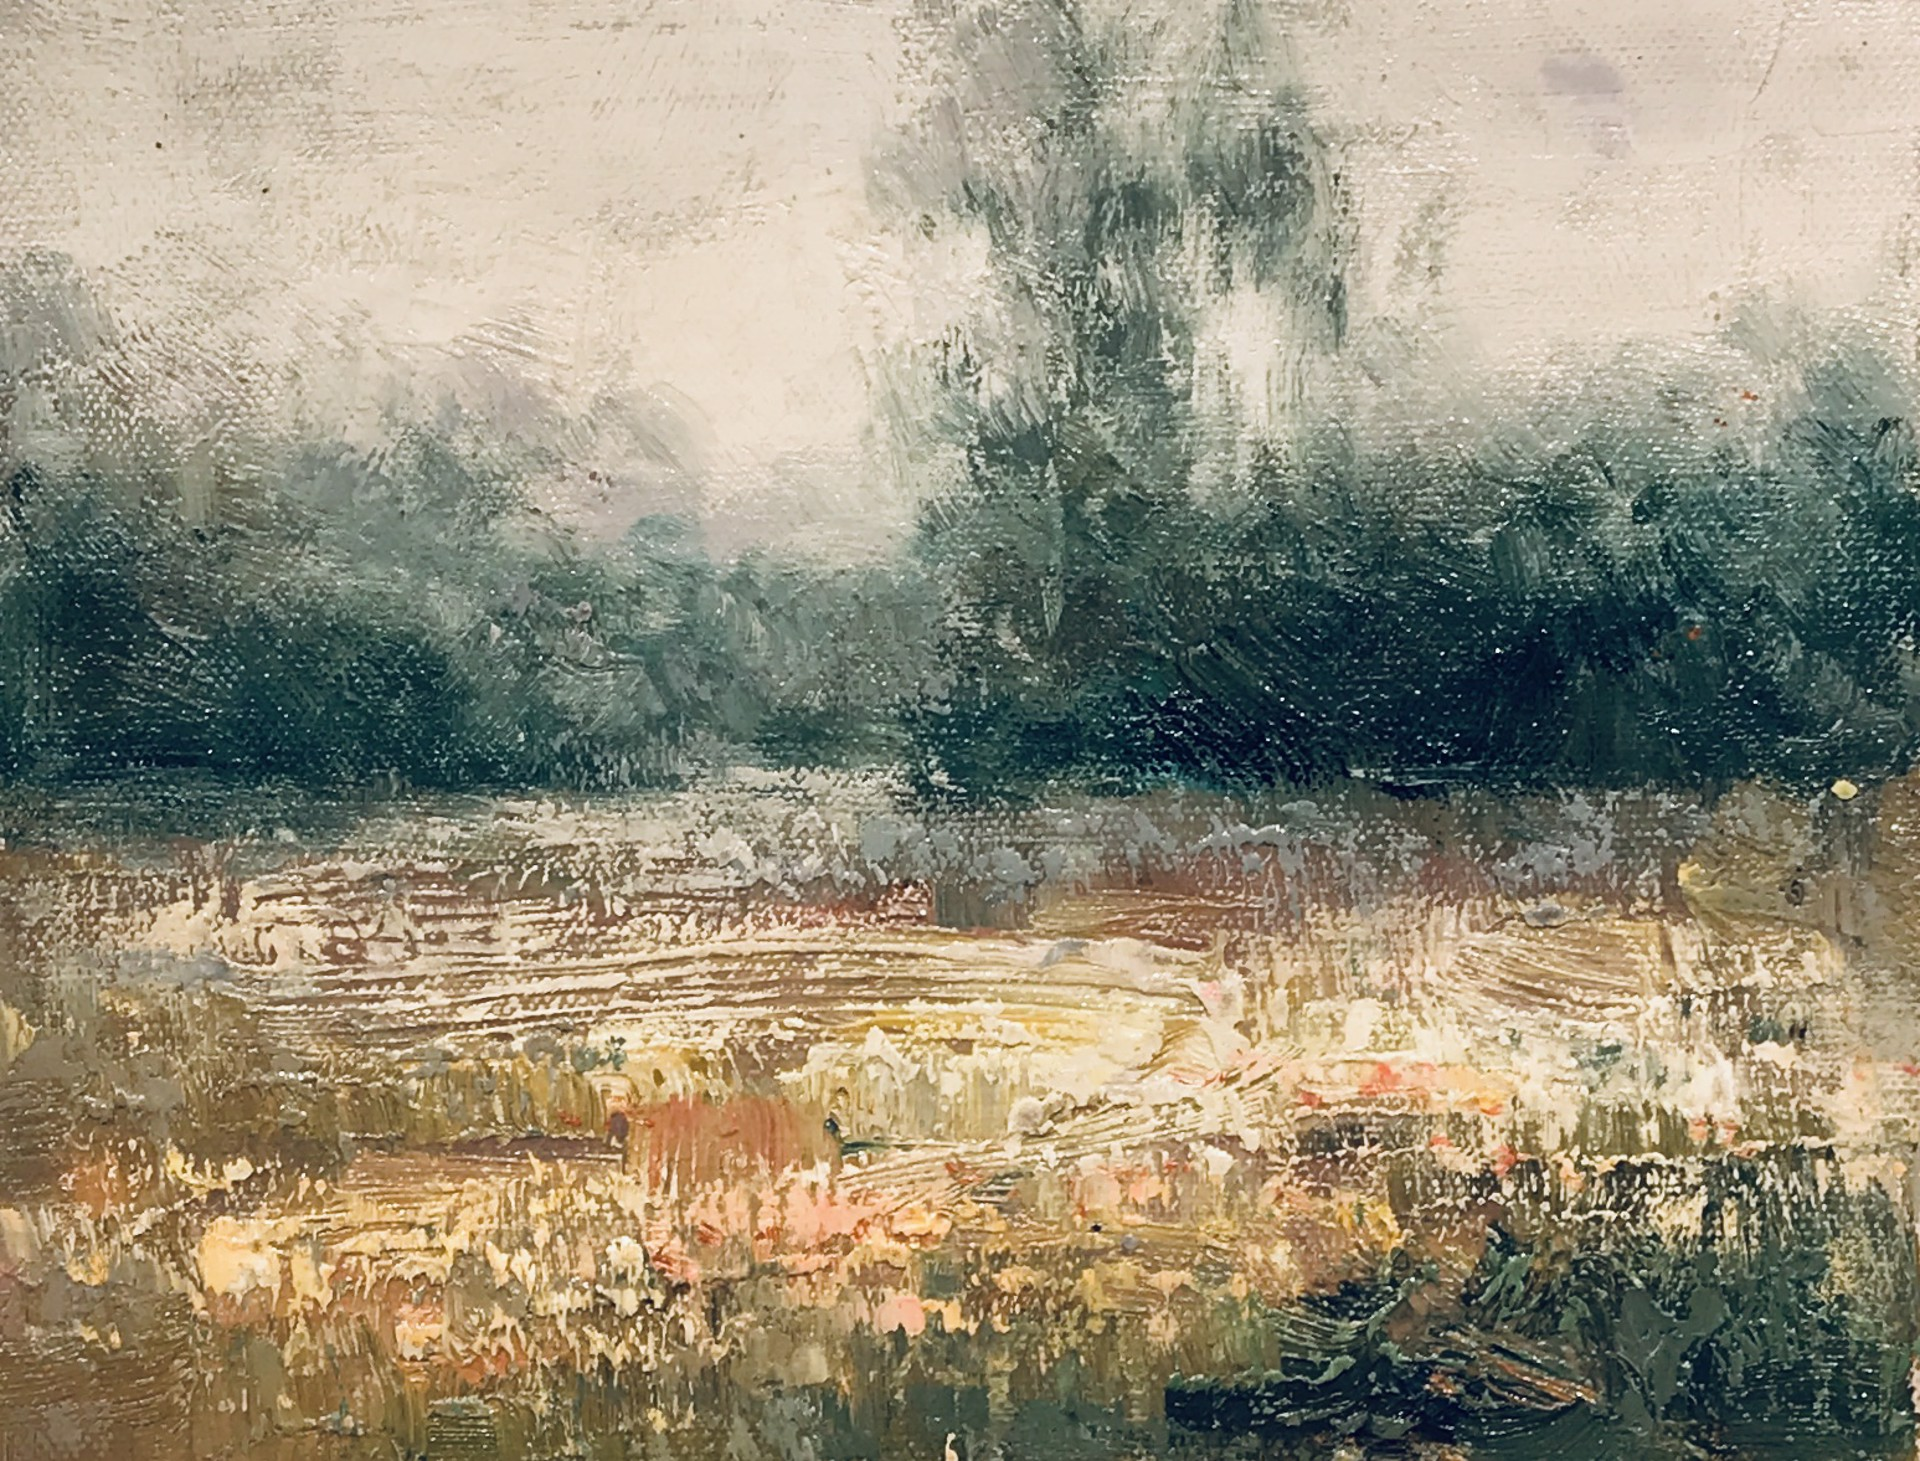 LANDSCAPE IN TEAL by VARIOUS WORKS